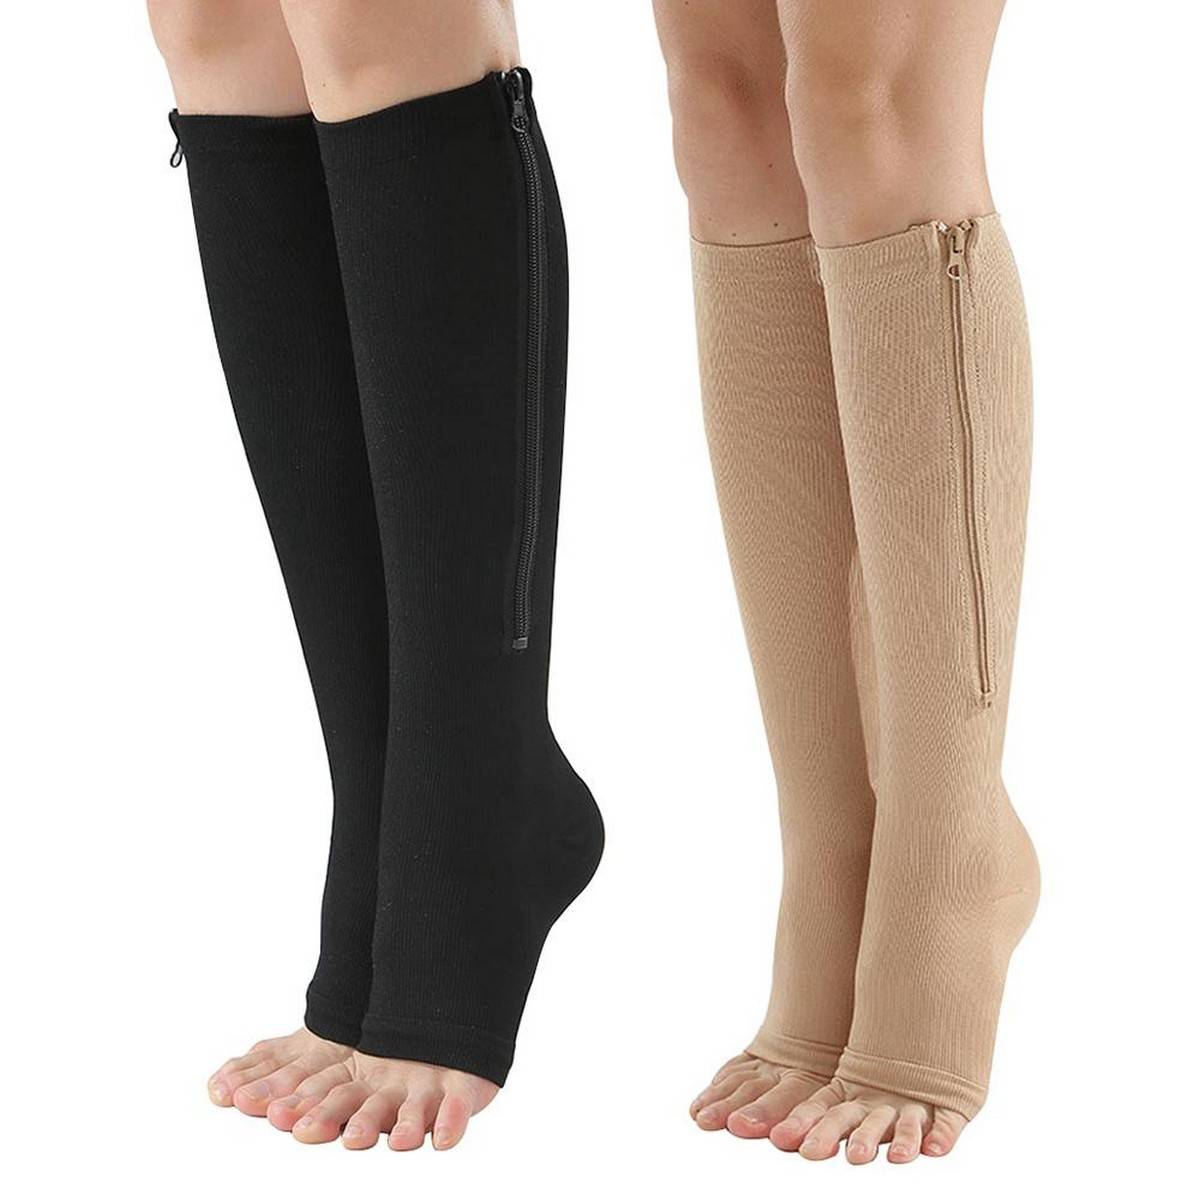 New winter socks  1 Pairs Compression Zip Socks Stretchy Leg Support Unisex Open Toe Knee Stockings